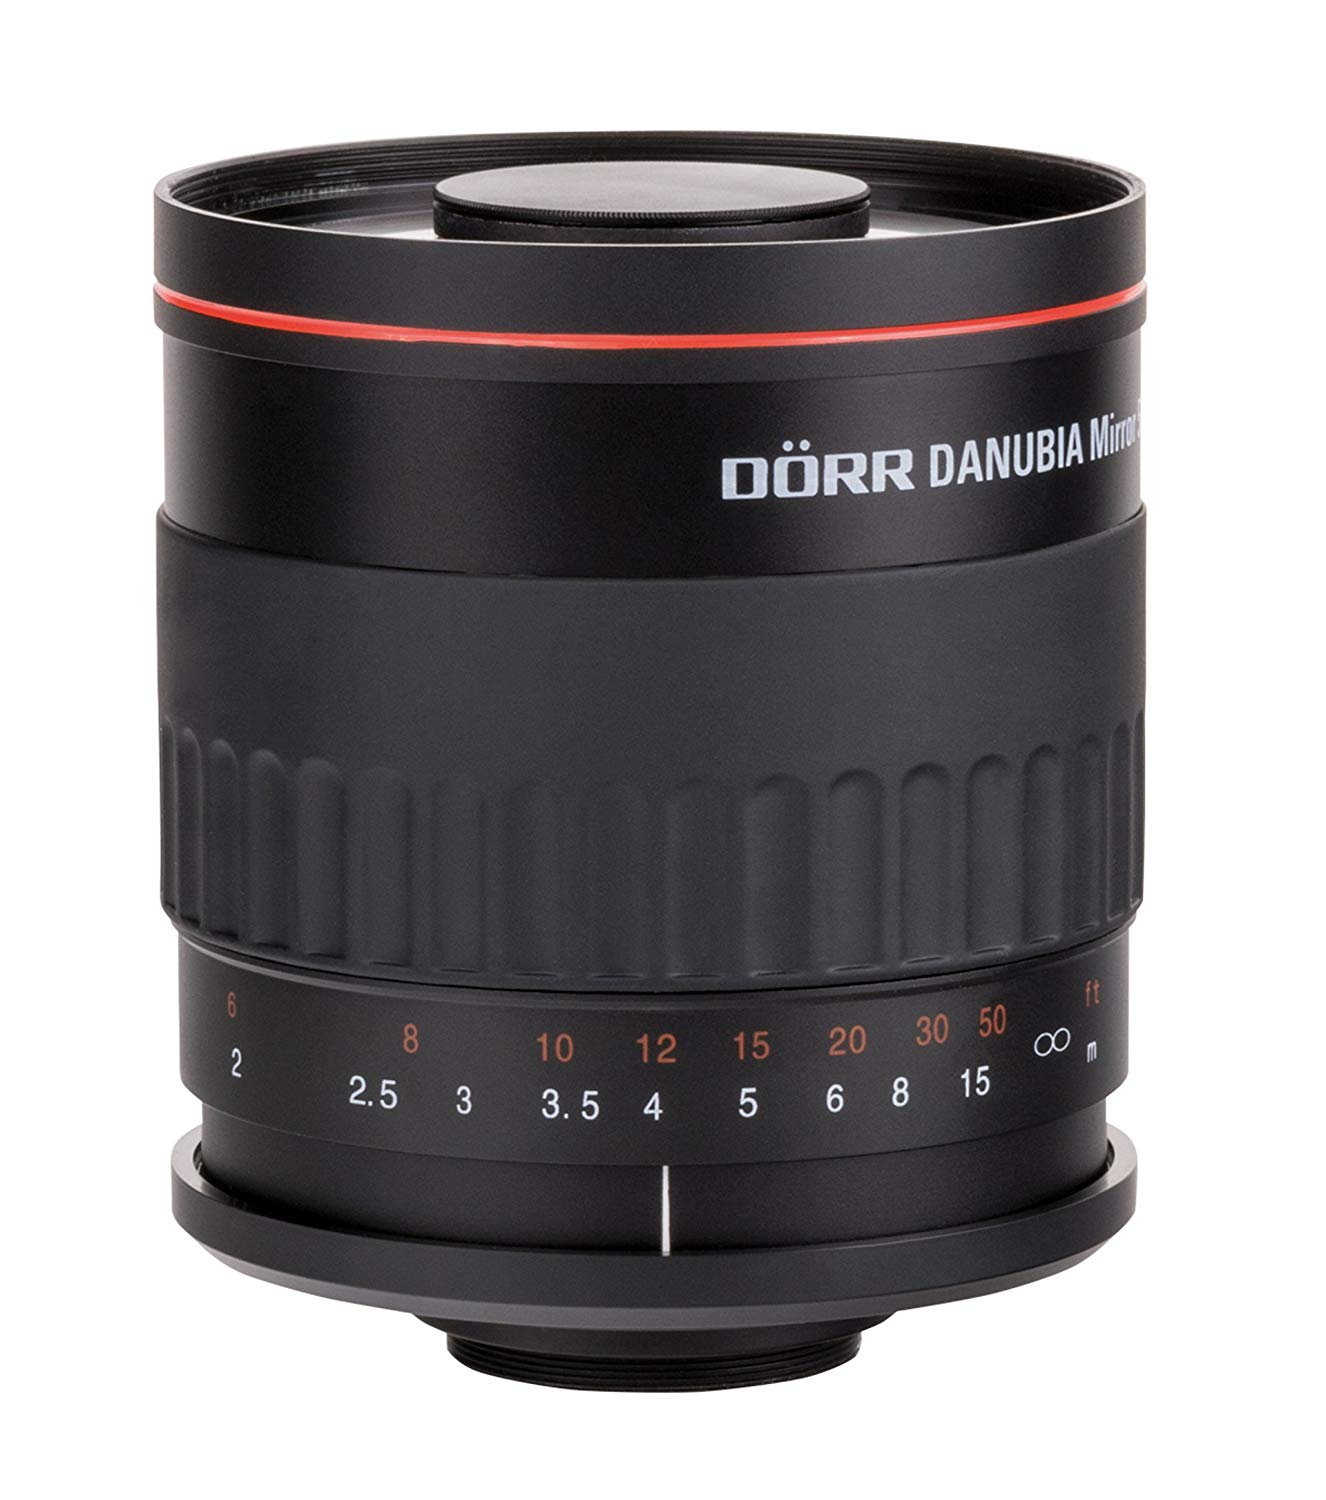 Danubia 500mm f/6.3 T2 Mount